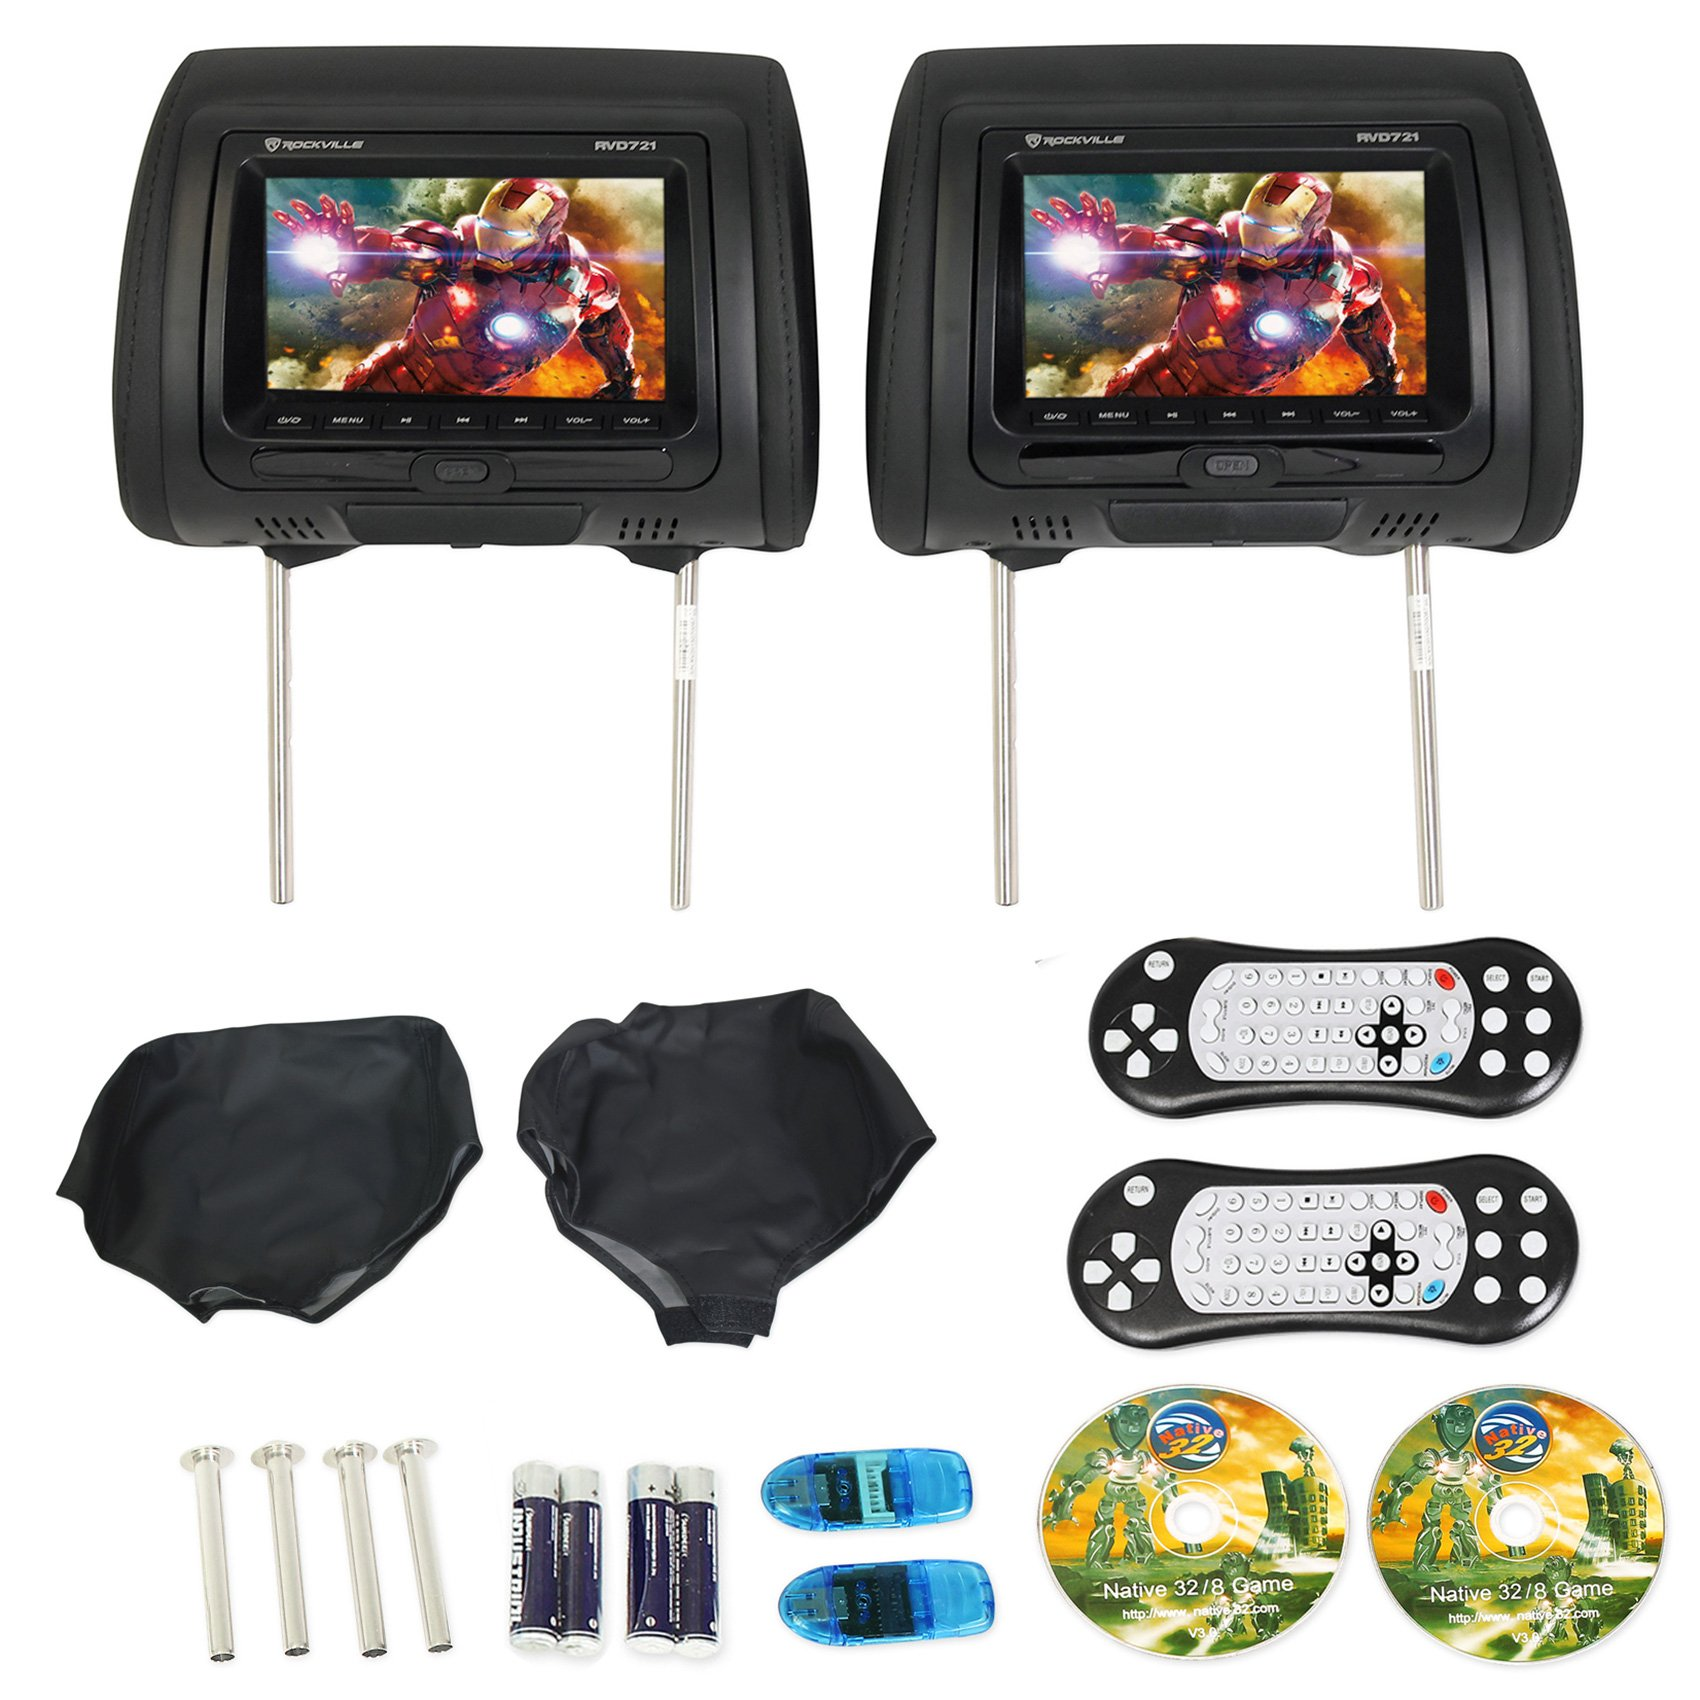 "Rockville RVD721-BK 7"" Black Dual DVD/USB/HDMI/SD Car Headrest Monitors + Games"